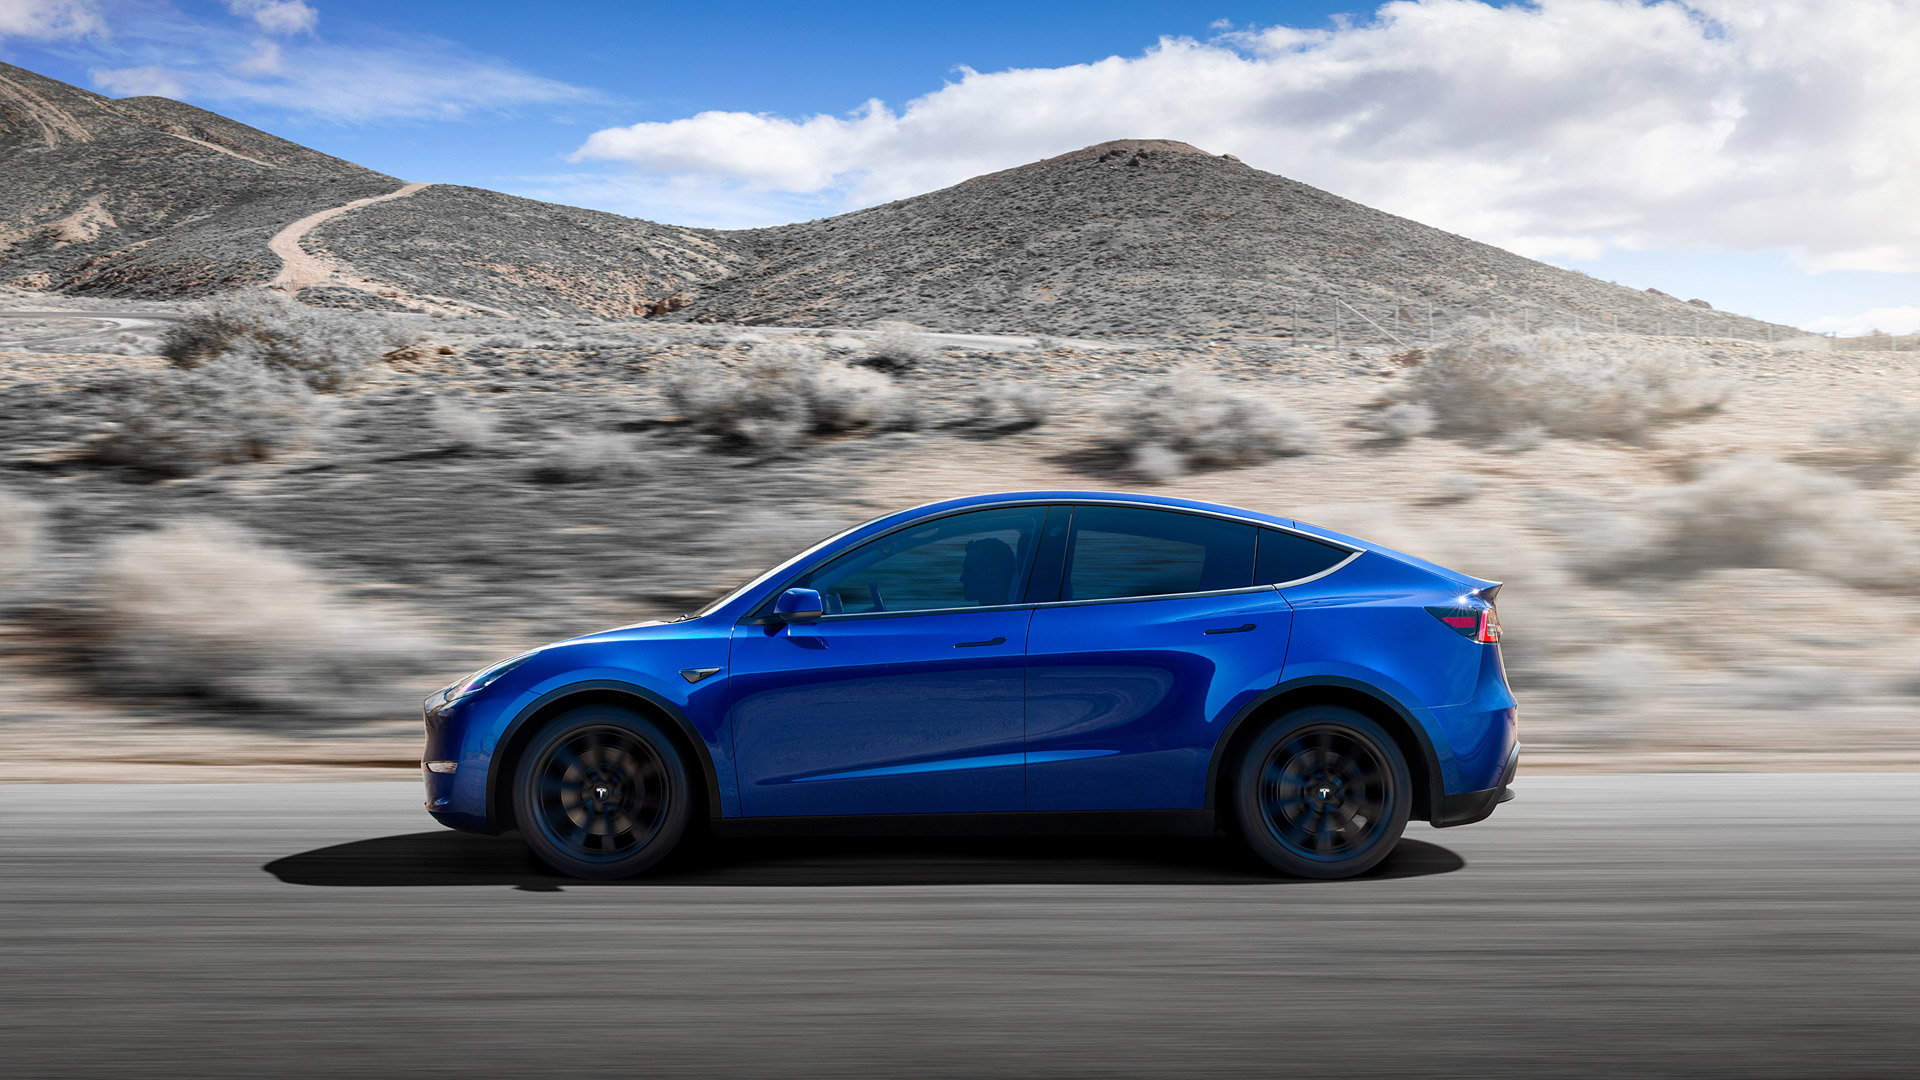 2021 Tesla Model Y Wallpapers Specs Videos   4K HD   WSupercars 1920x1080